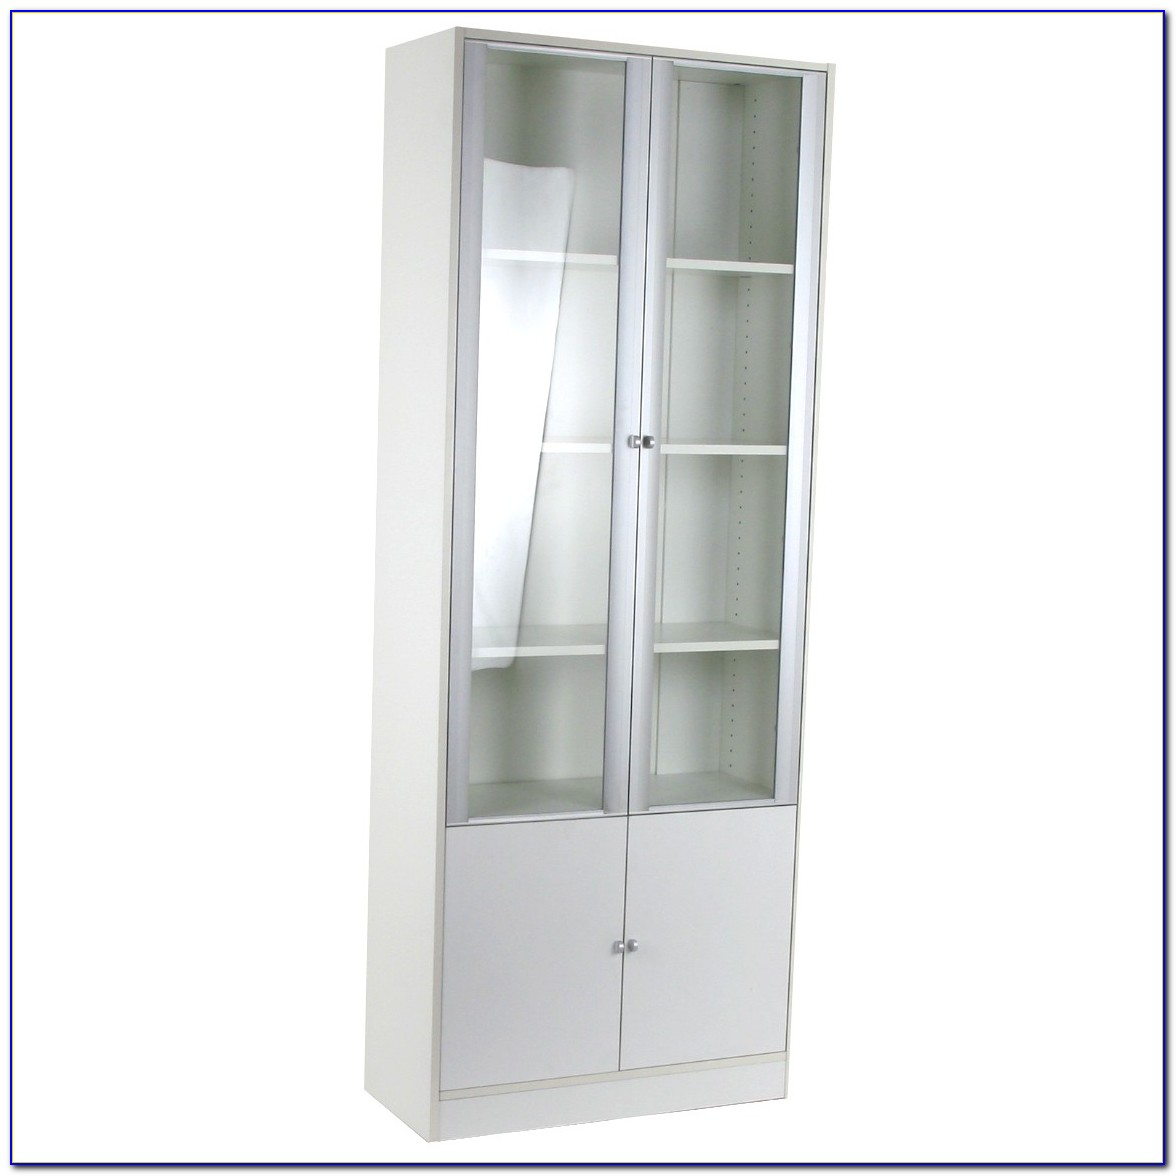 Ikea Hemnes Bookcase With Glass Doors